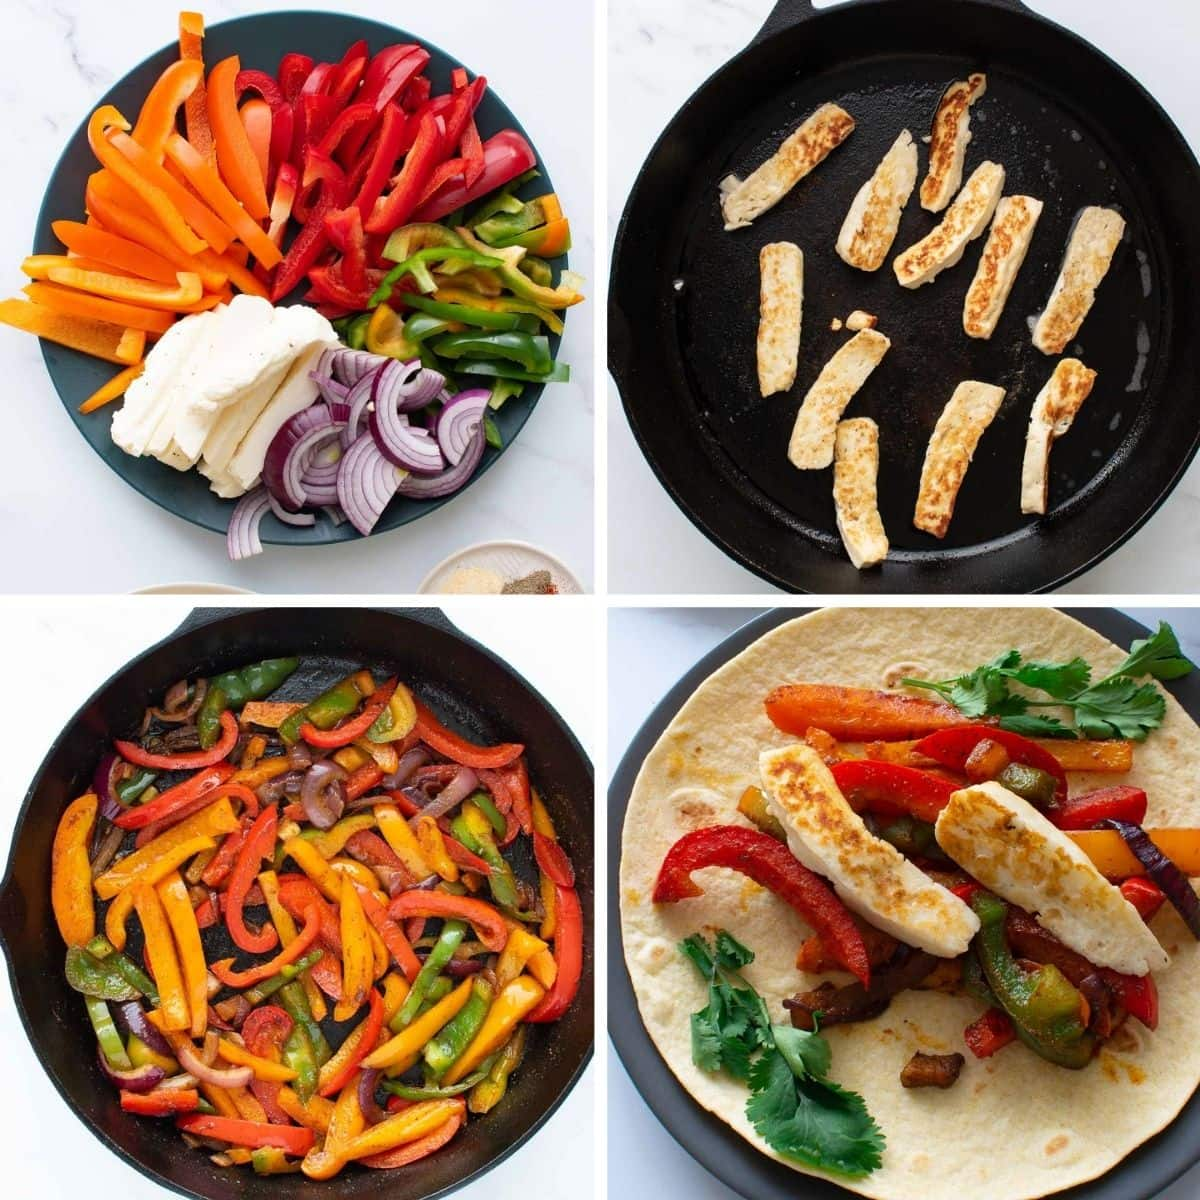 Step by step images showing how to make halloumi cheese fajitas in a cast iron pan.